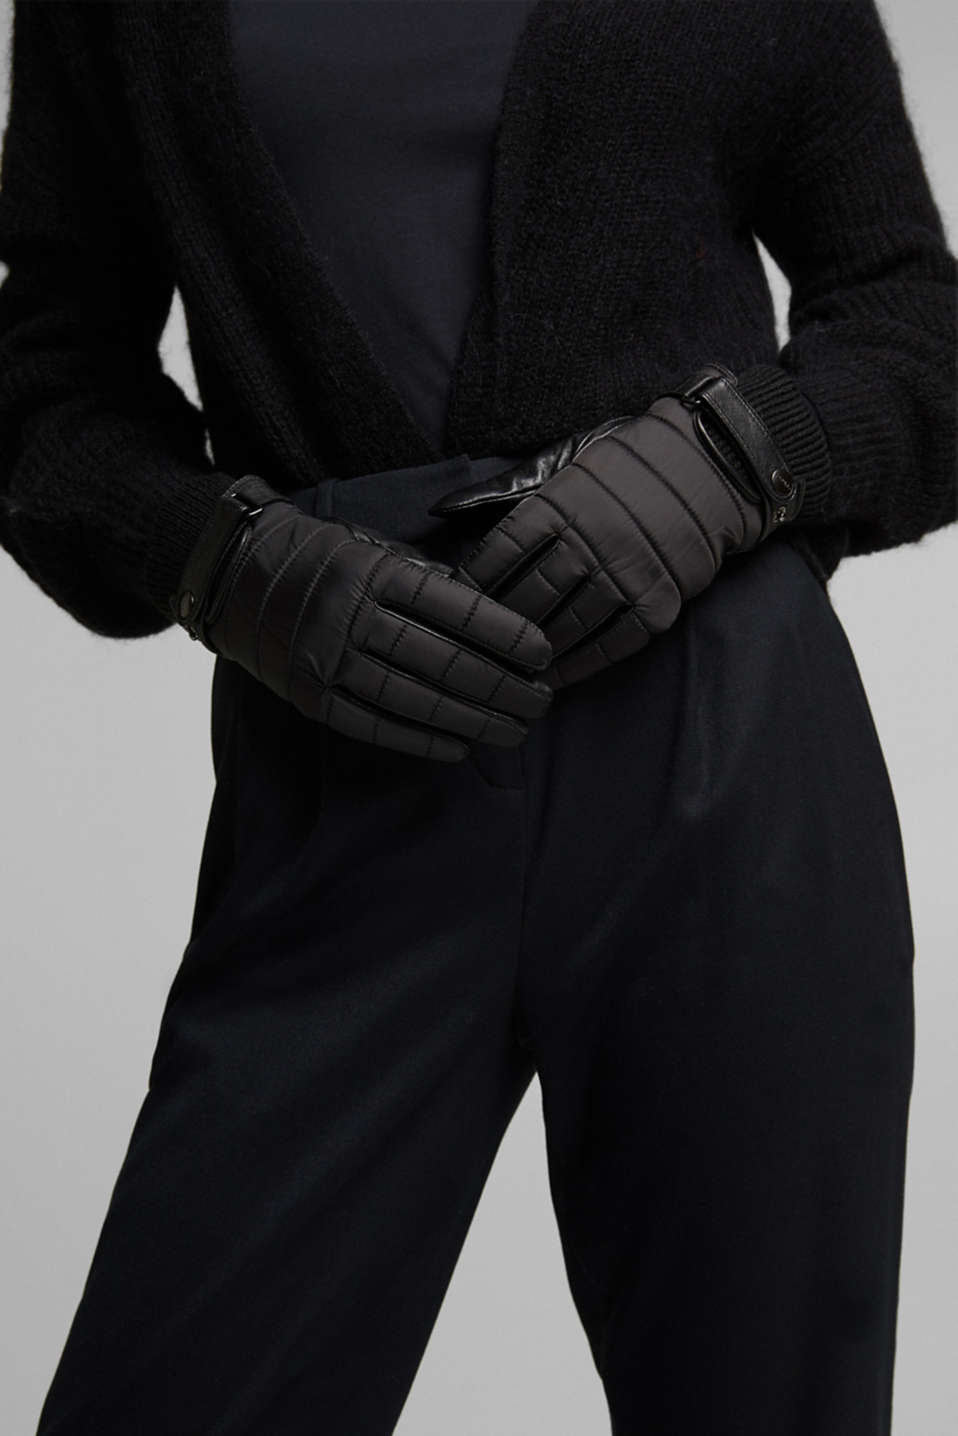 Esprit - Mixed material gloves featuring lamb leather